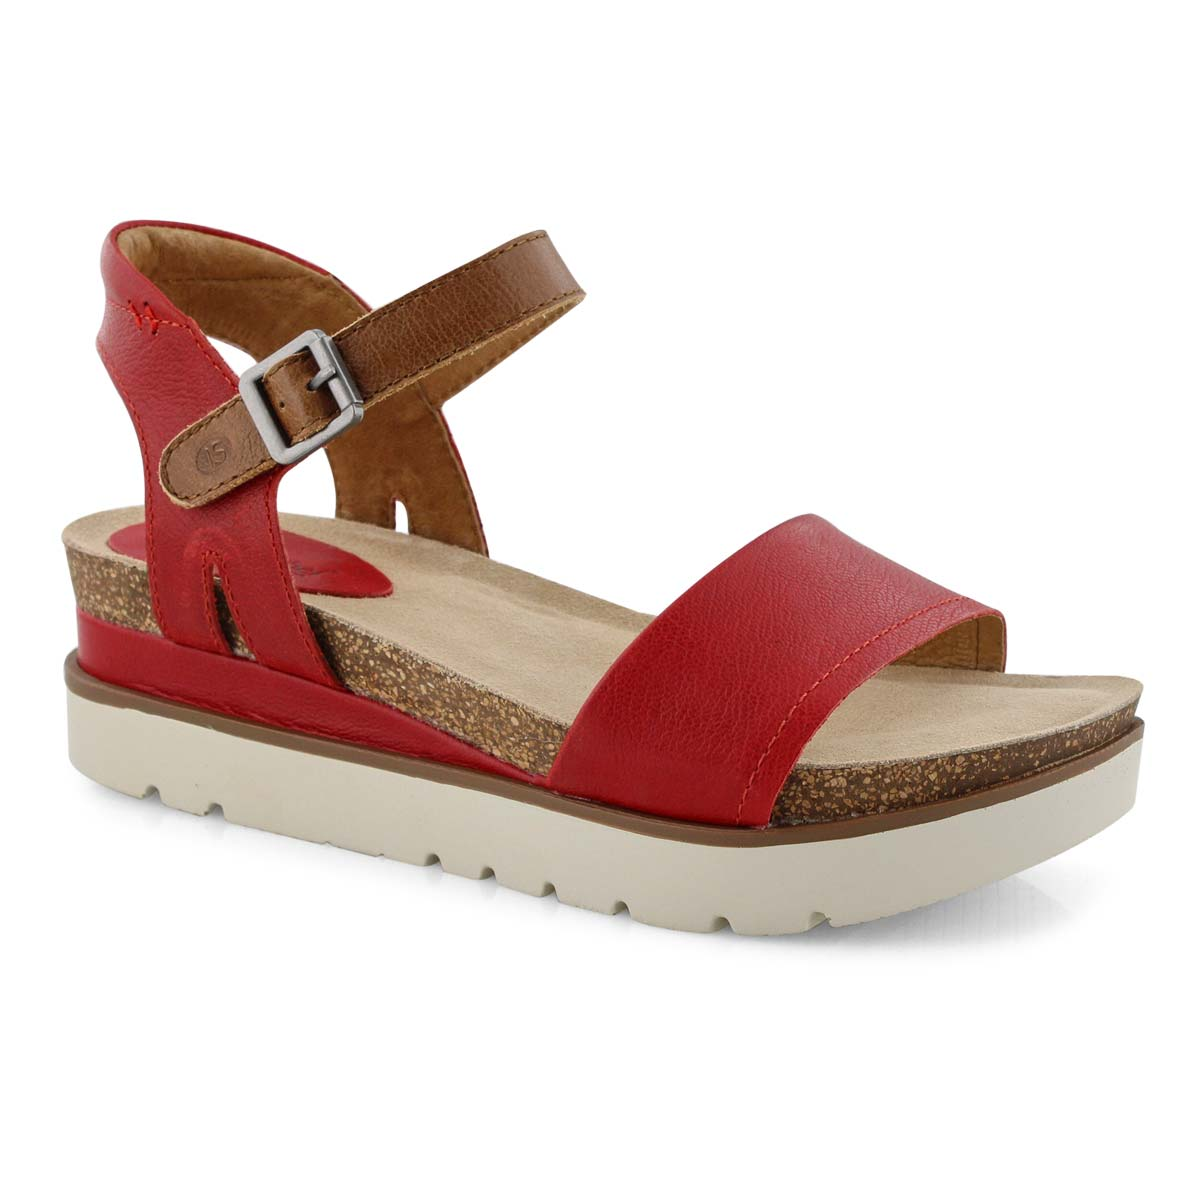 Lds Clea 01 red casual sandal